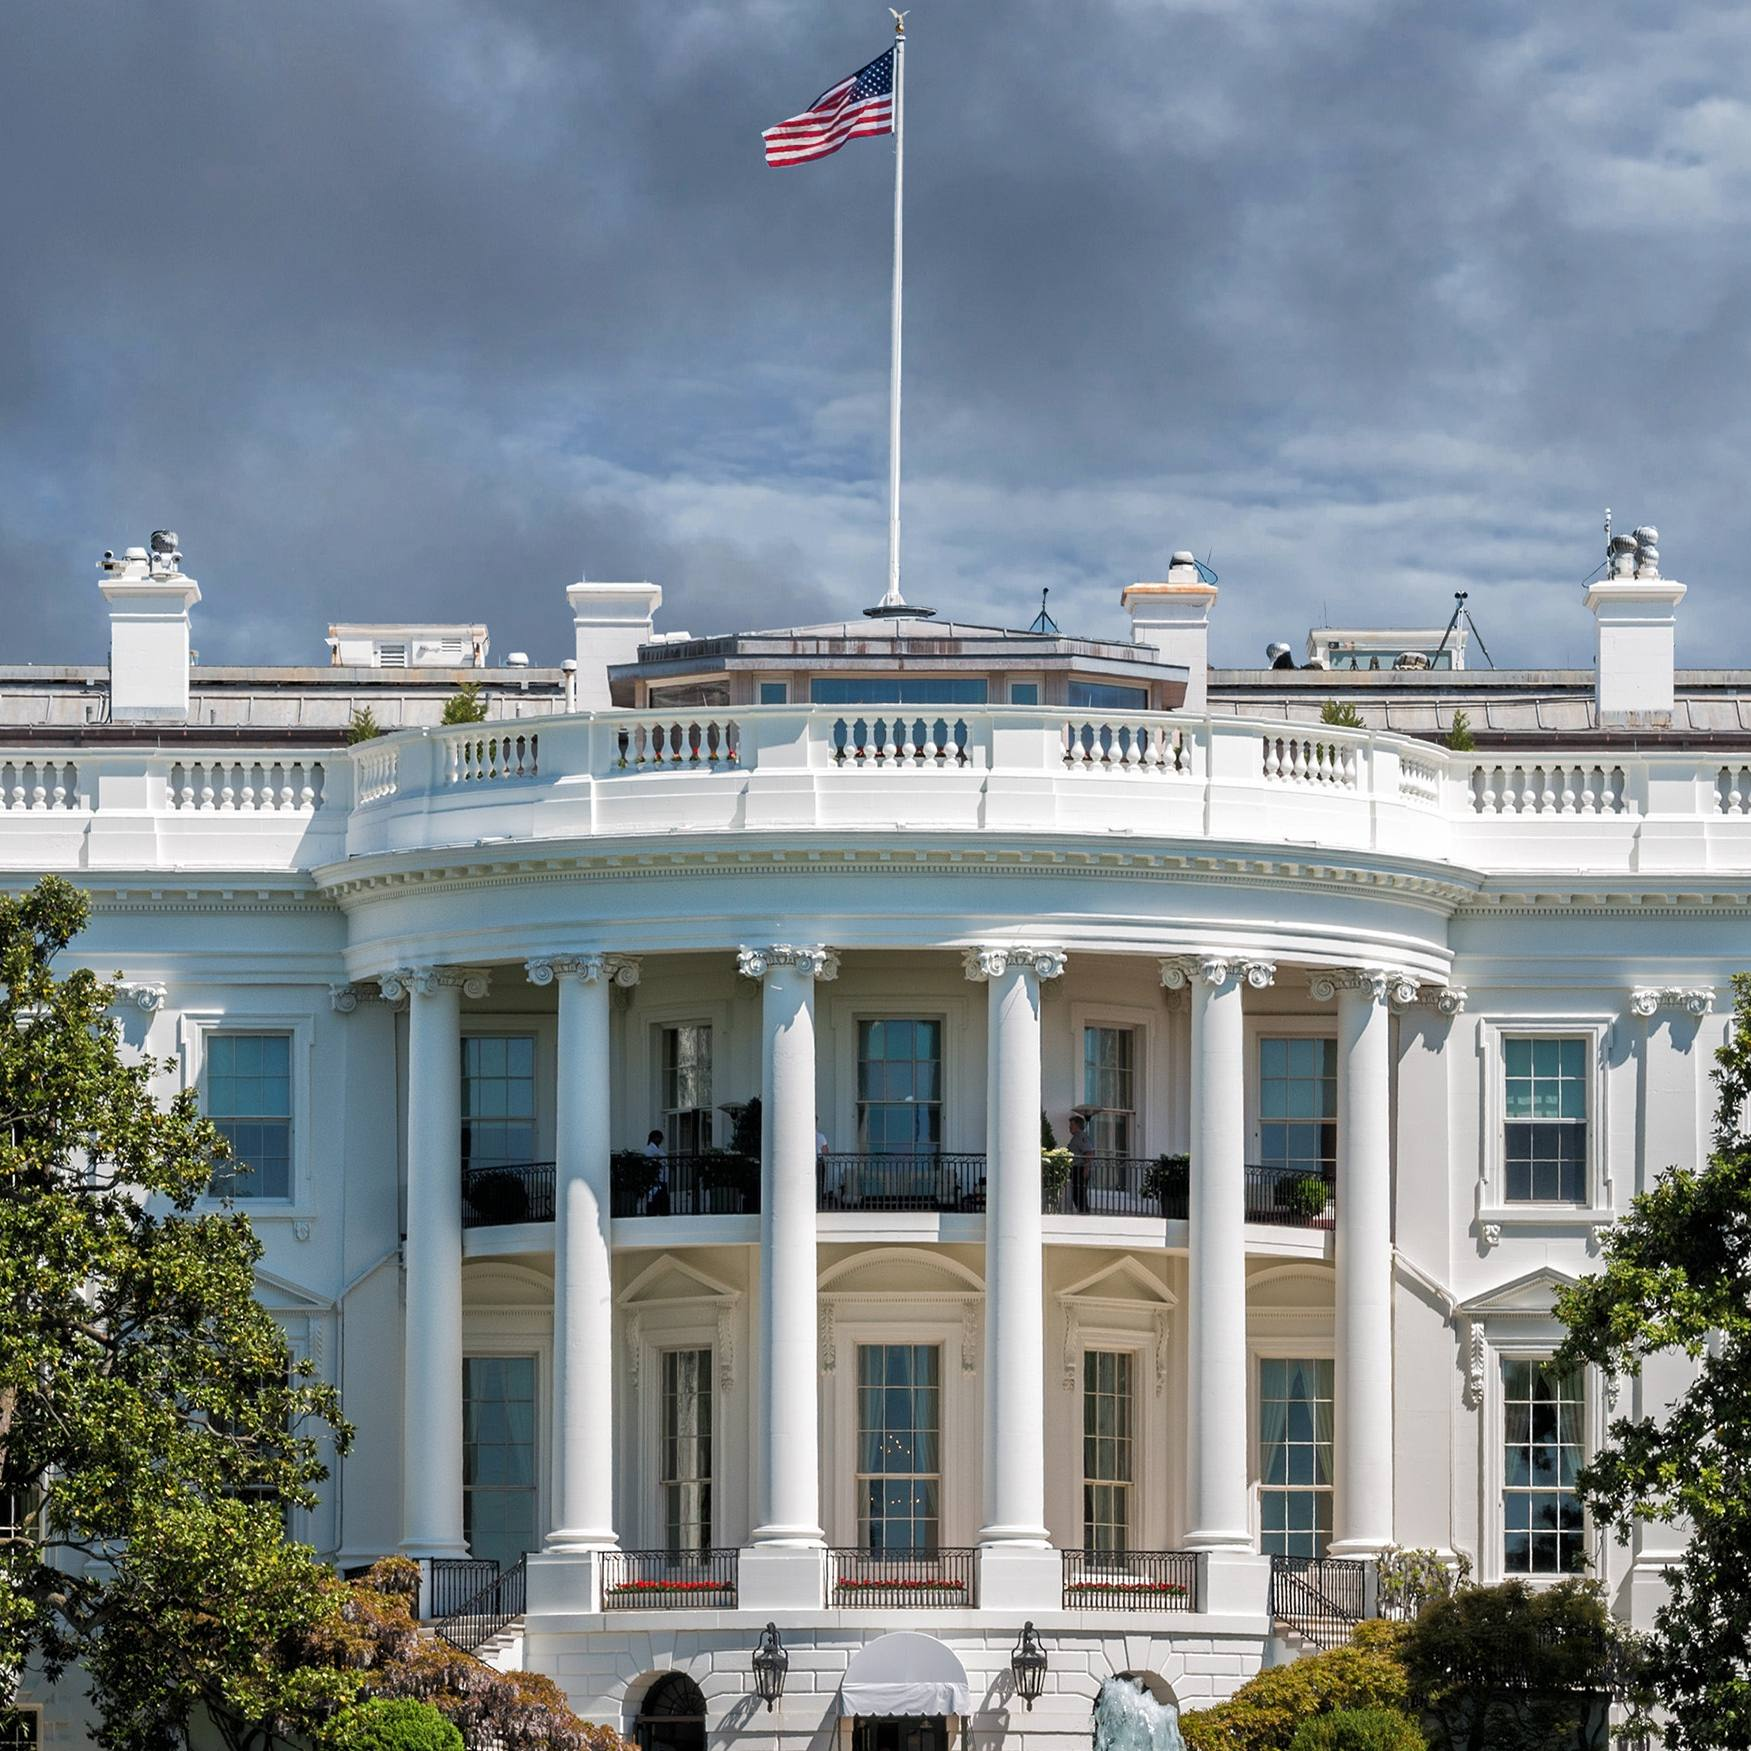 the White House in Washington DC on a gray stormy day